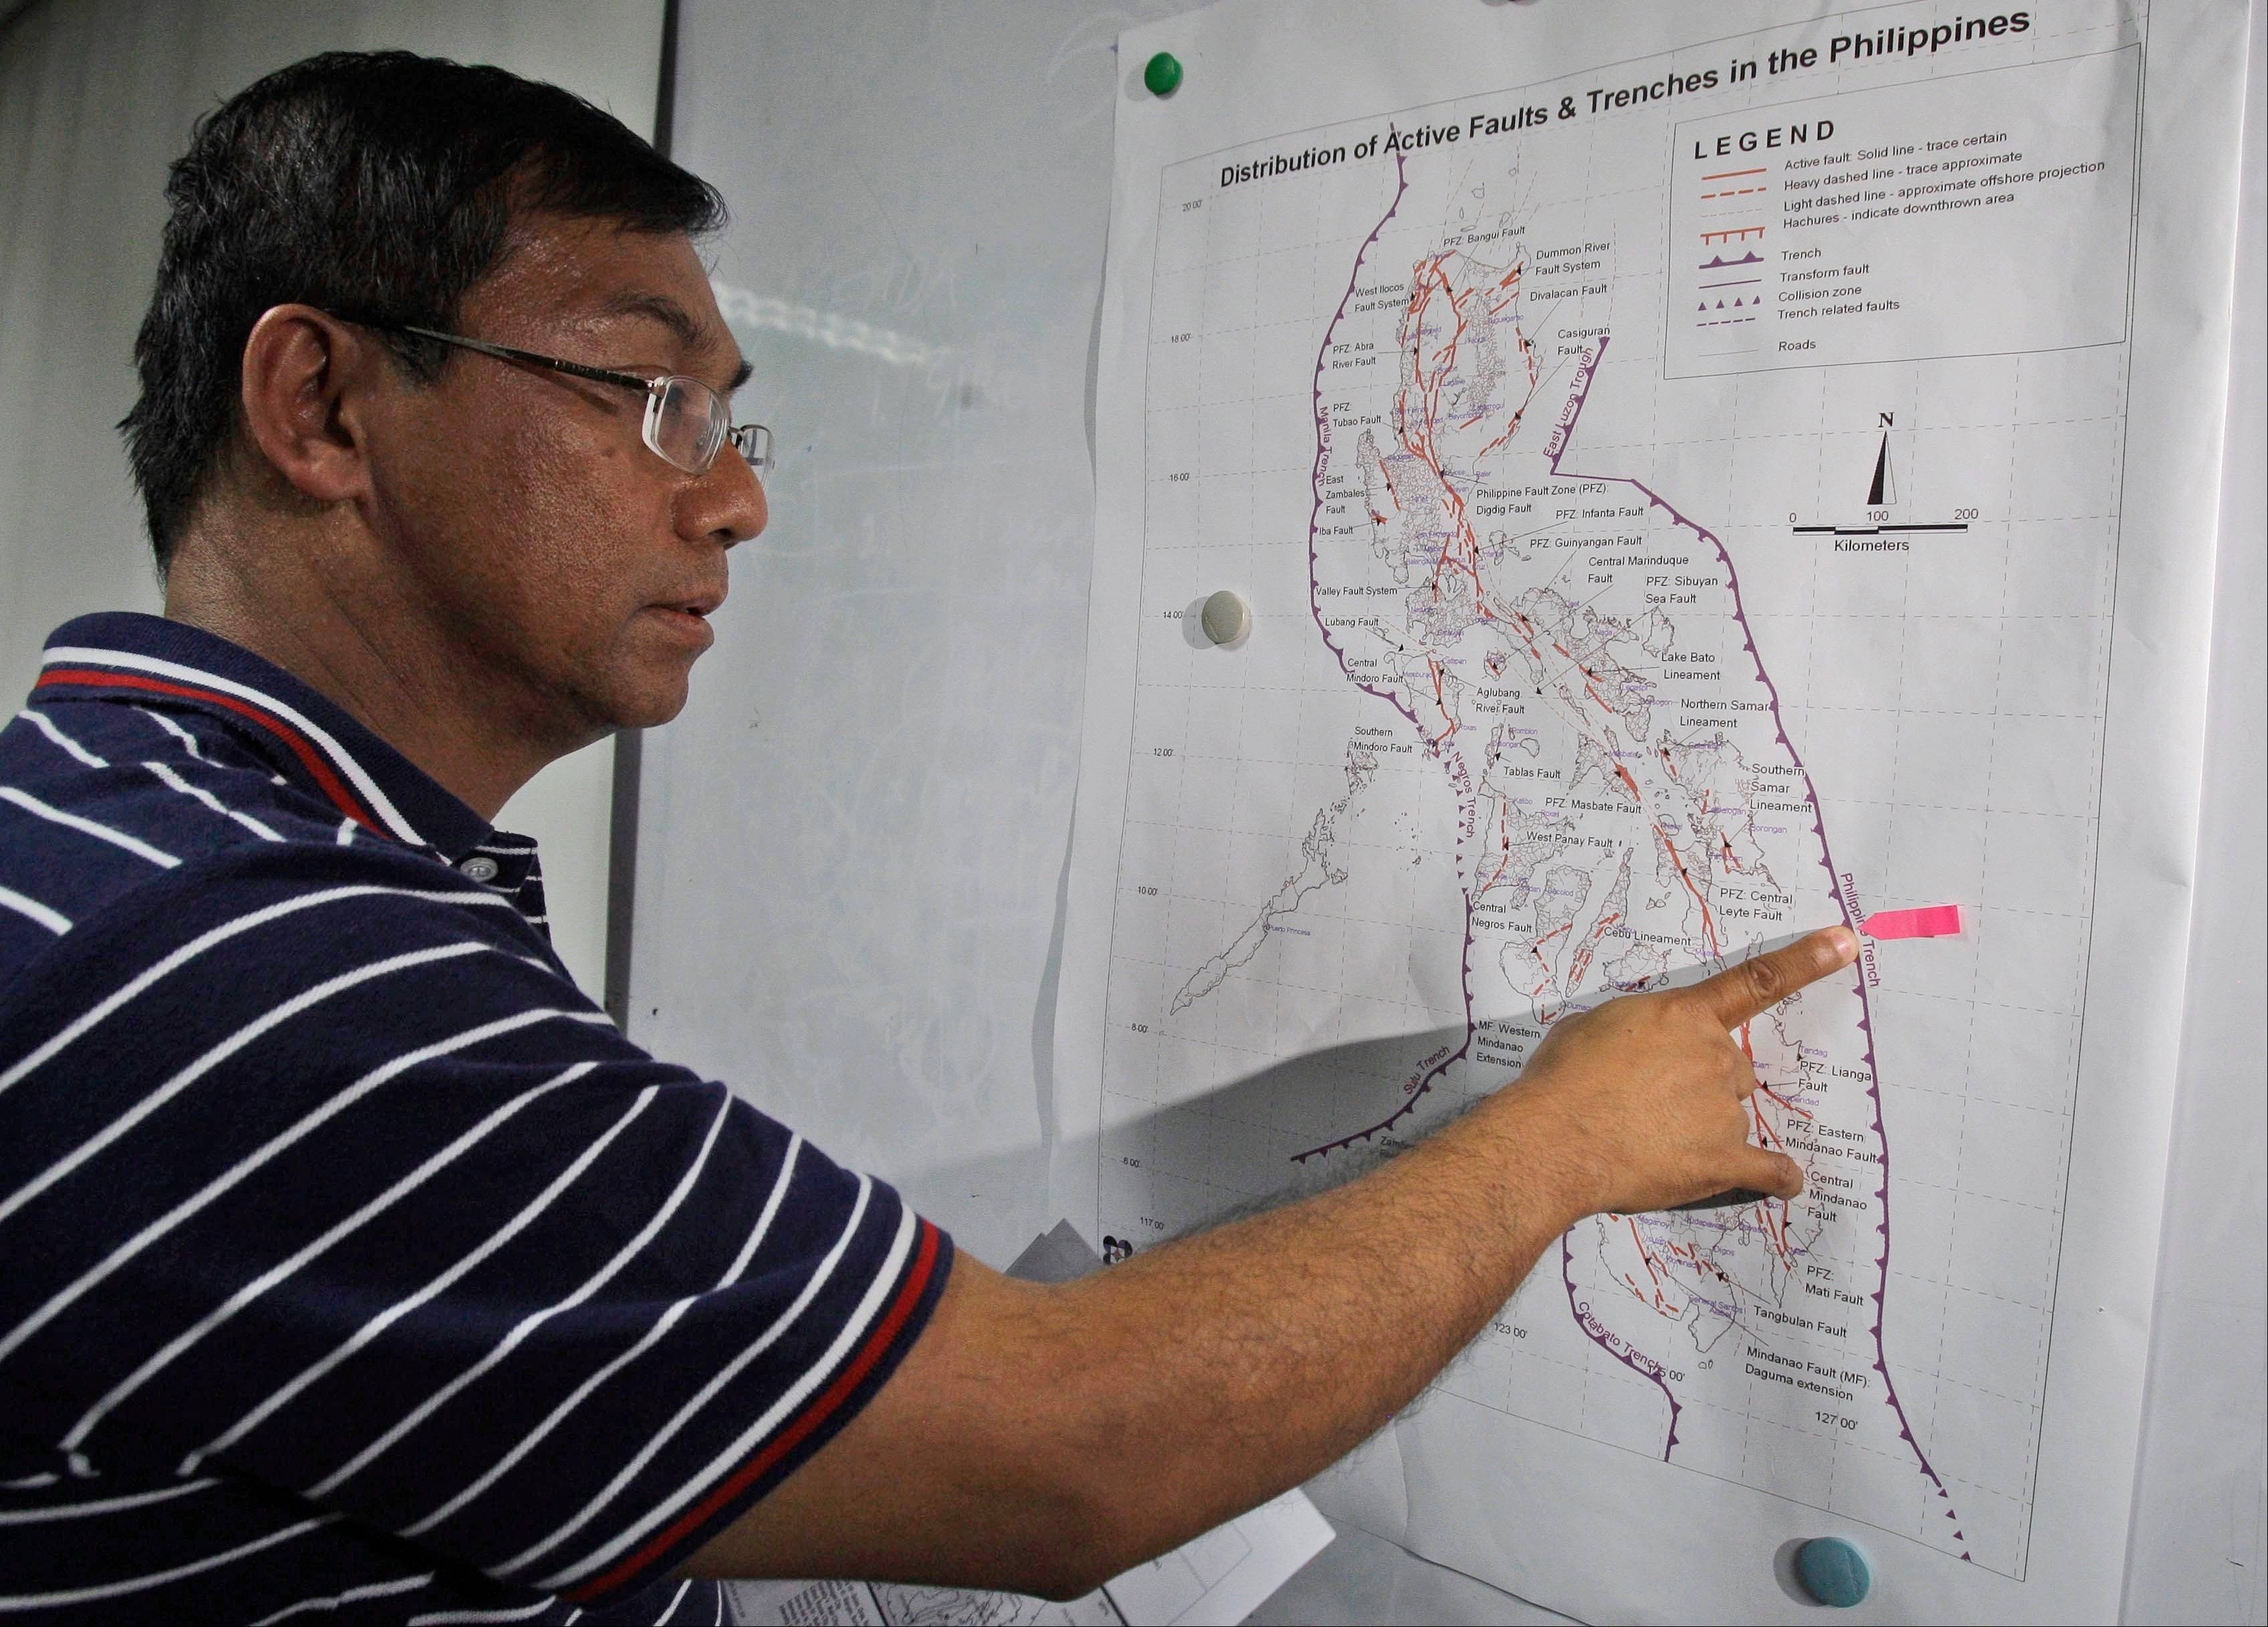 Renato Solidum, head of the Philippine seismology agency, points to an area on a Philippine map where the epicenter of the earthquake happened during a press conference in suburban Quezon City, north of Manila, Philippines on Friday Aug. 31, 2012. A 7.6-magnitude quake struck off the eastern coast of the Philippines late Friday, killing at least one person in a house collapse and setting off small tsunami waves about 0.1-foot-high. Most coastal residents fled to high ground and power was knocked out in several cities.